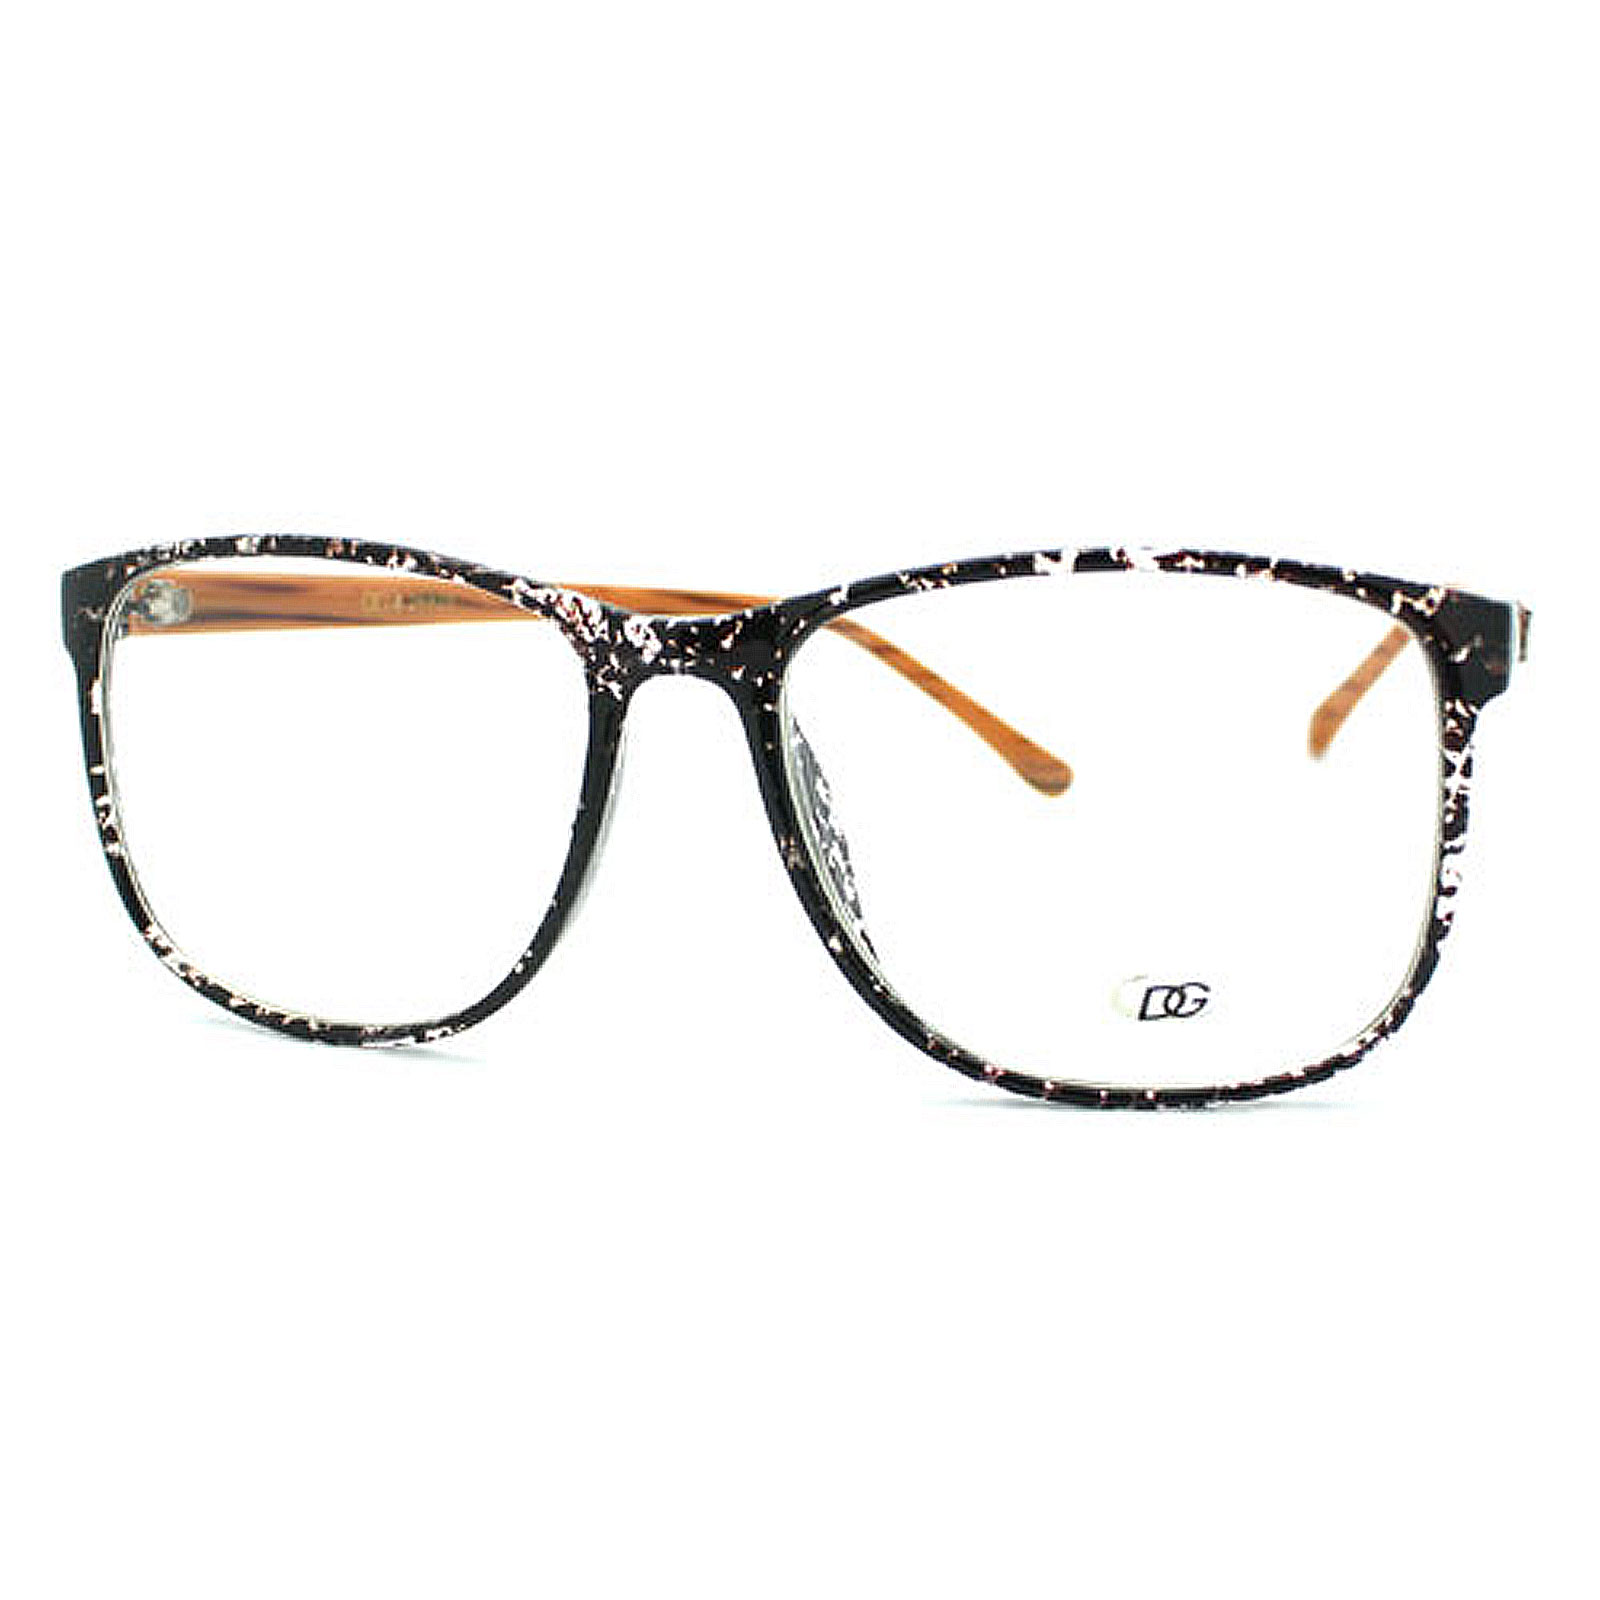 Glasses Frames Black On Top Clear On Bottom : New Nerd Fashion Eye Glasses with Clear Lens 2-Tone Black ...